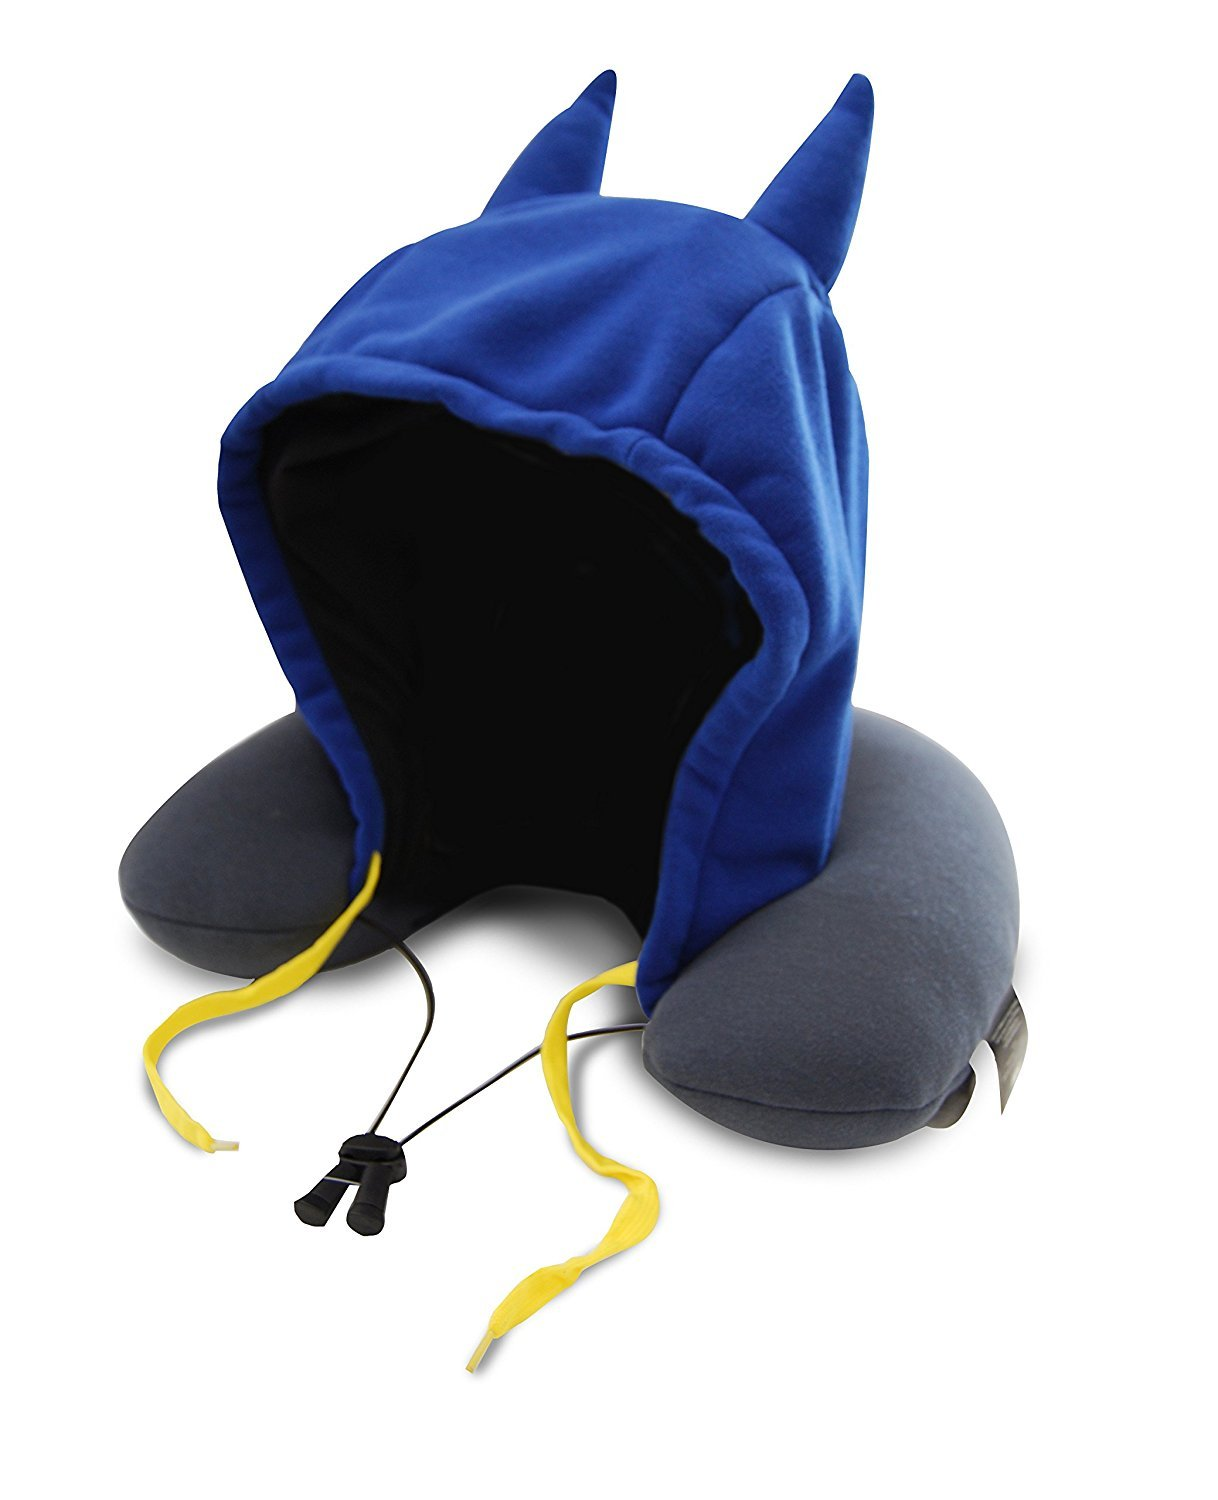 Batman Hooded Neck Pillow